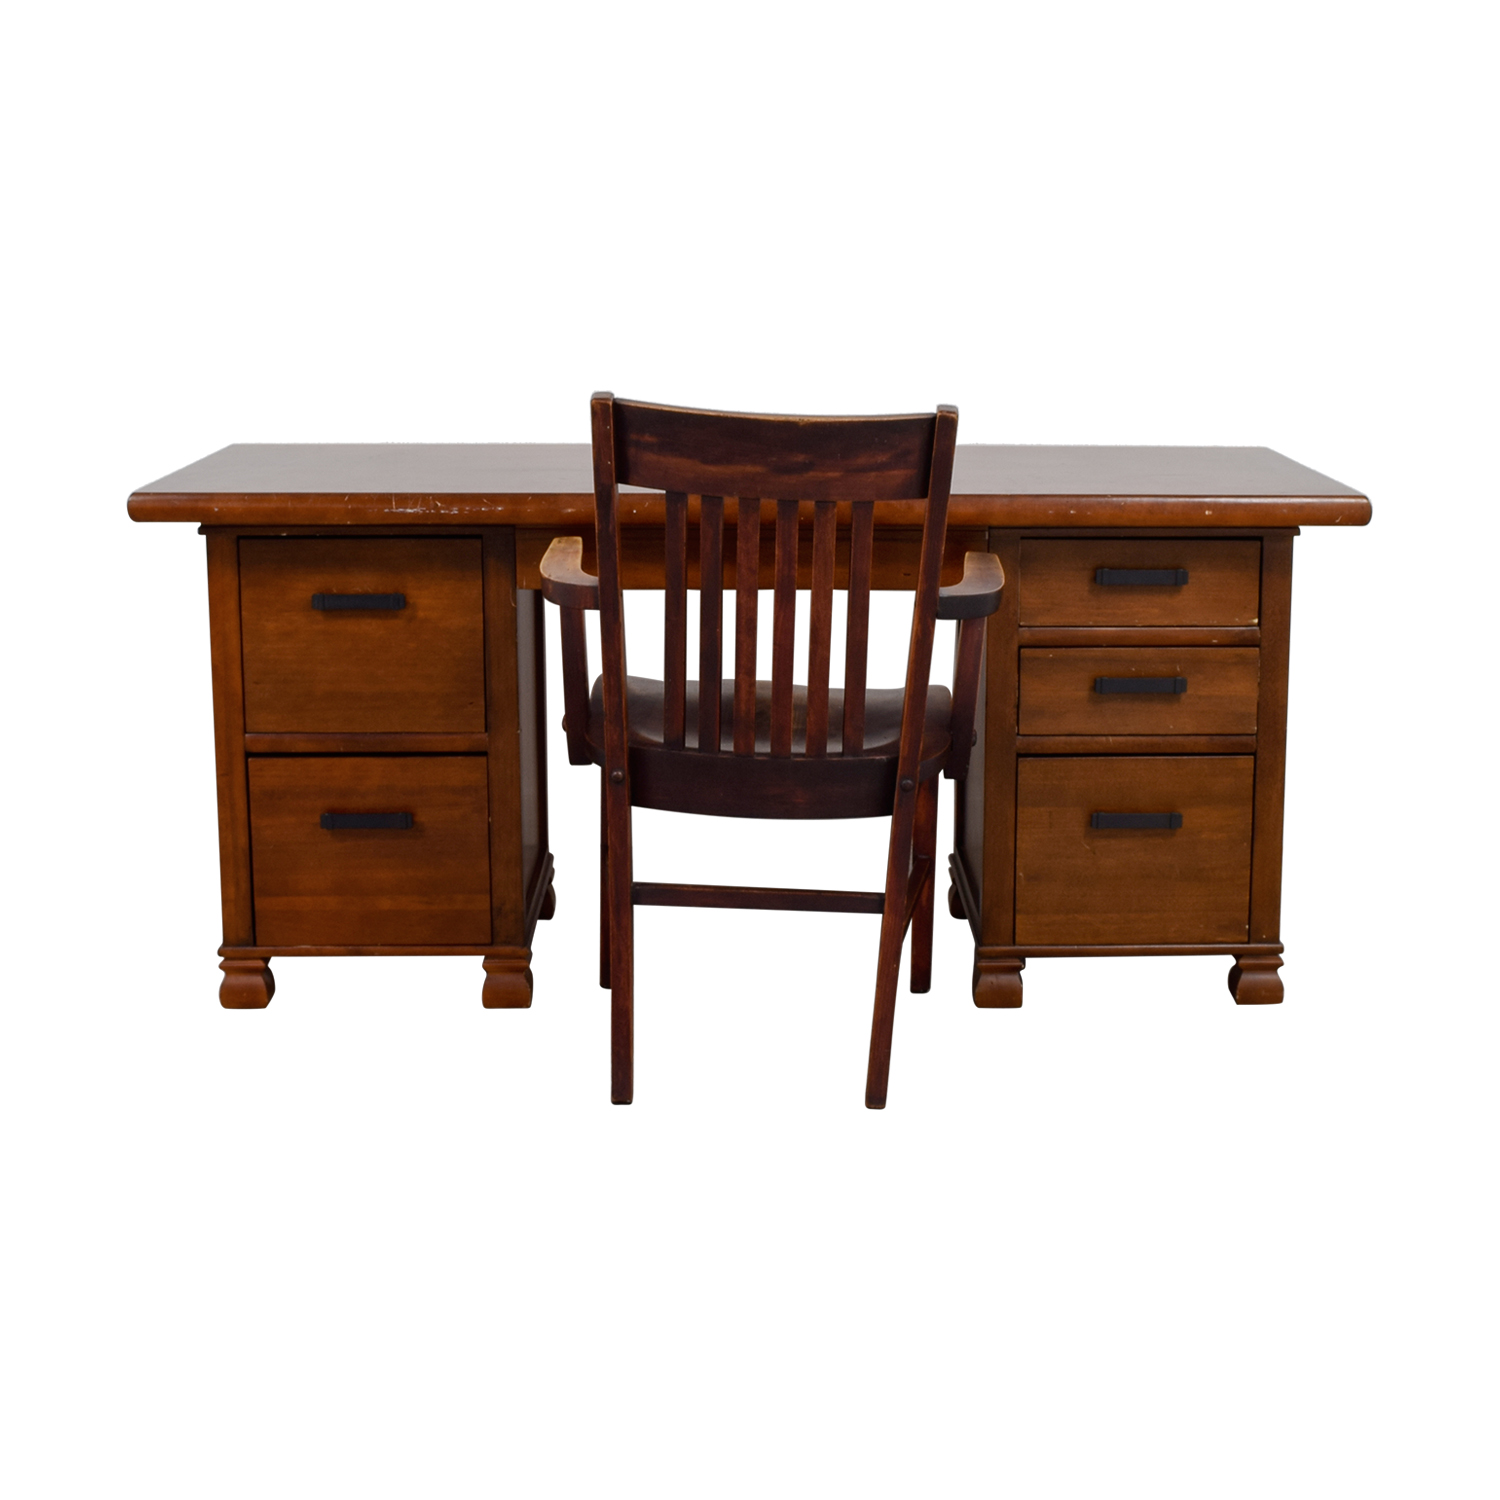 buy Pottery Barn Pottery Barn Wooden Cherry Desk with Chair online